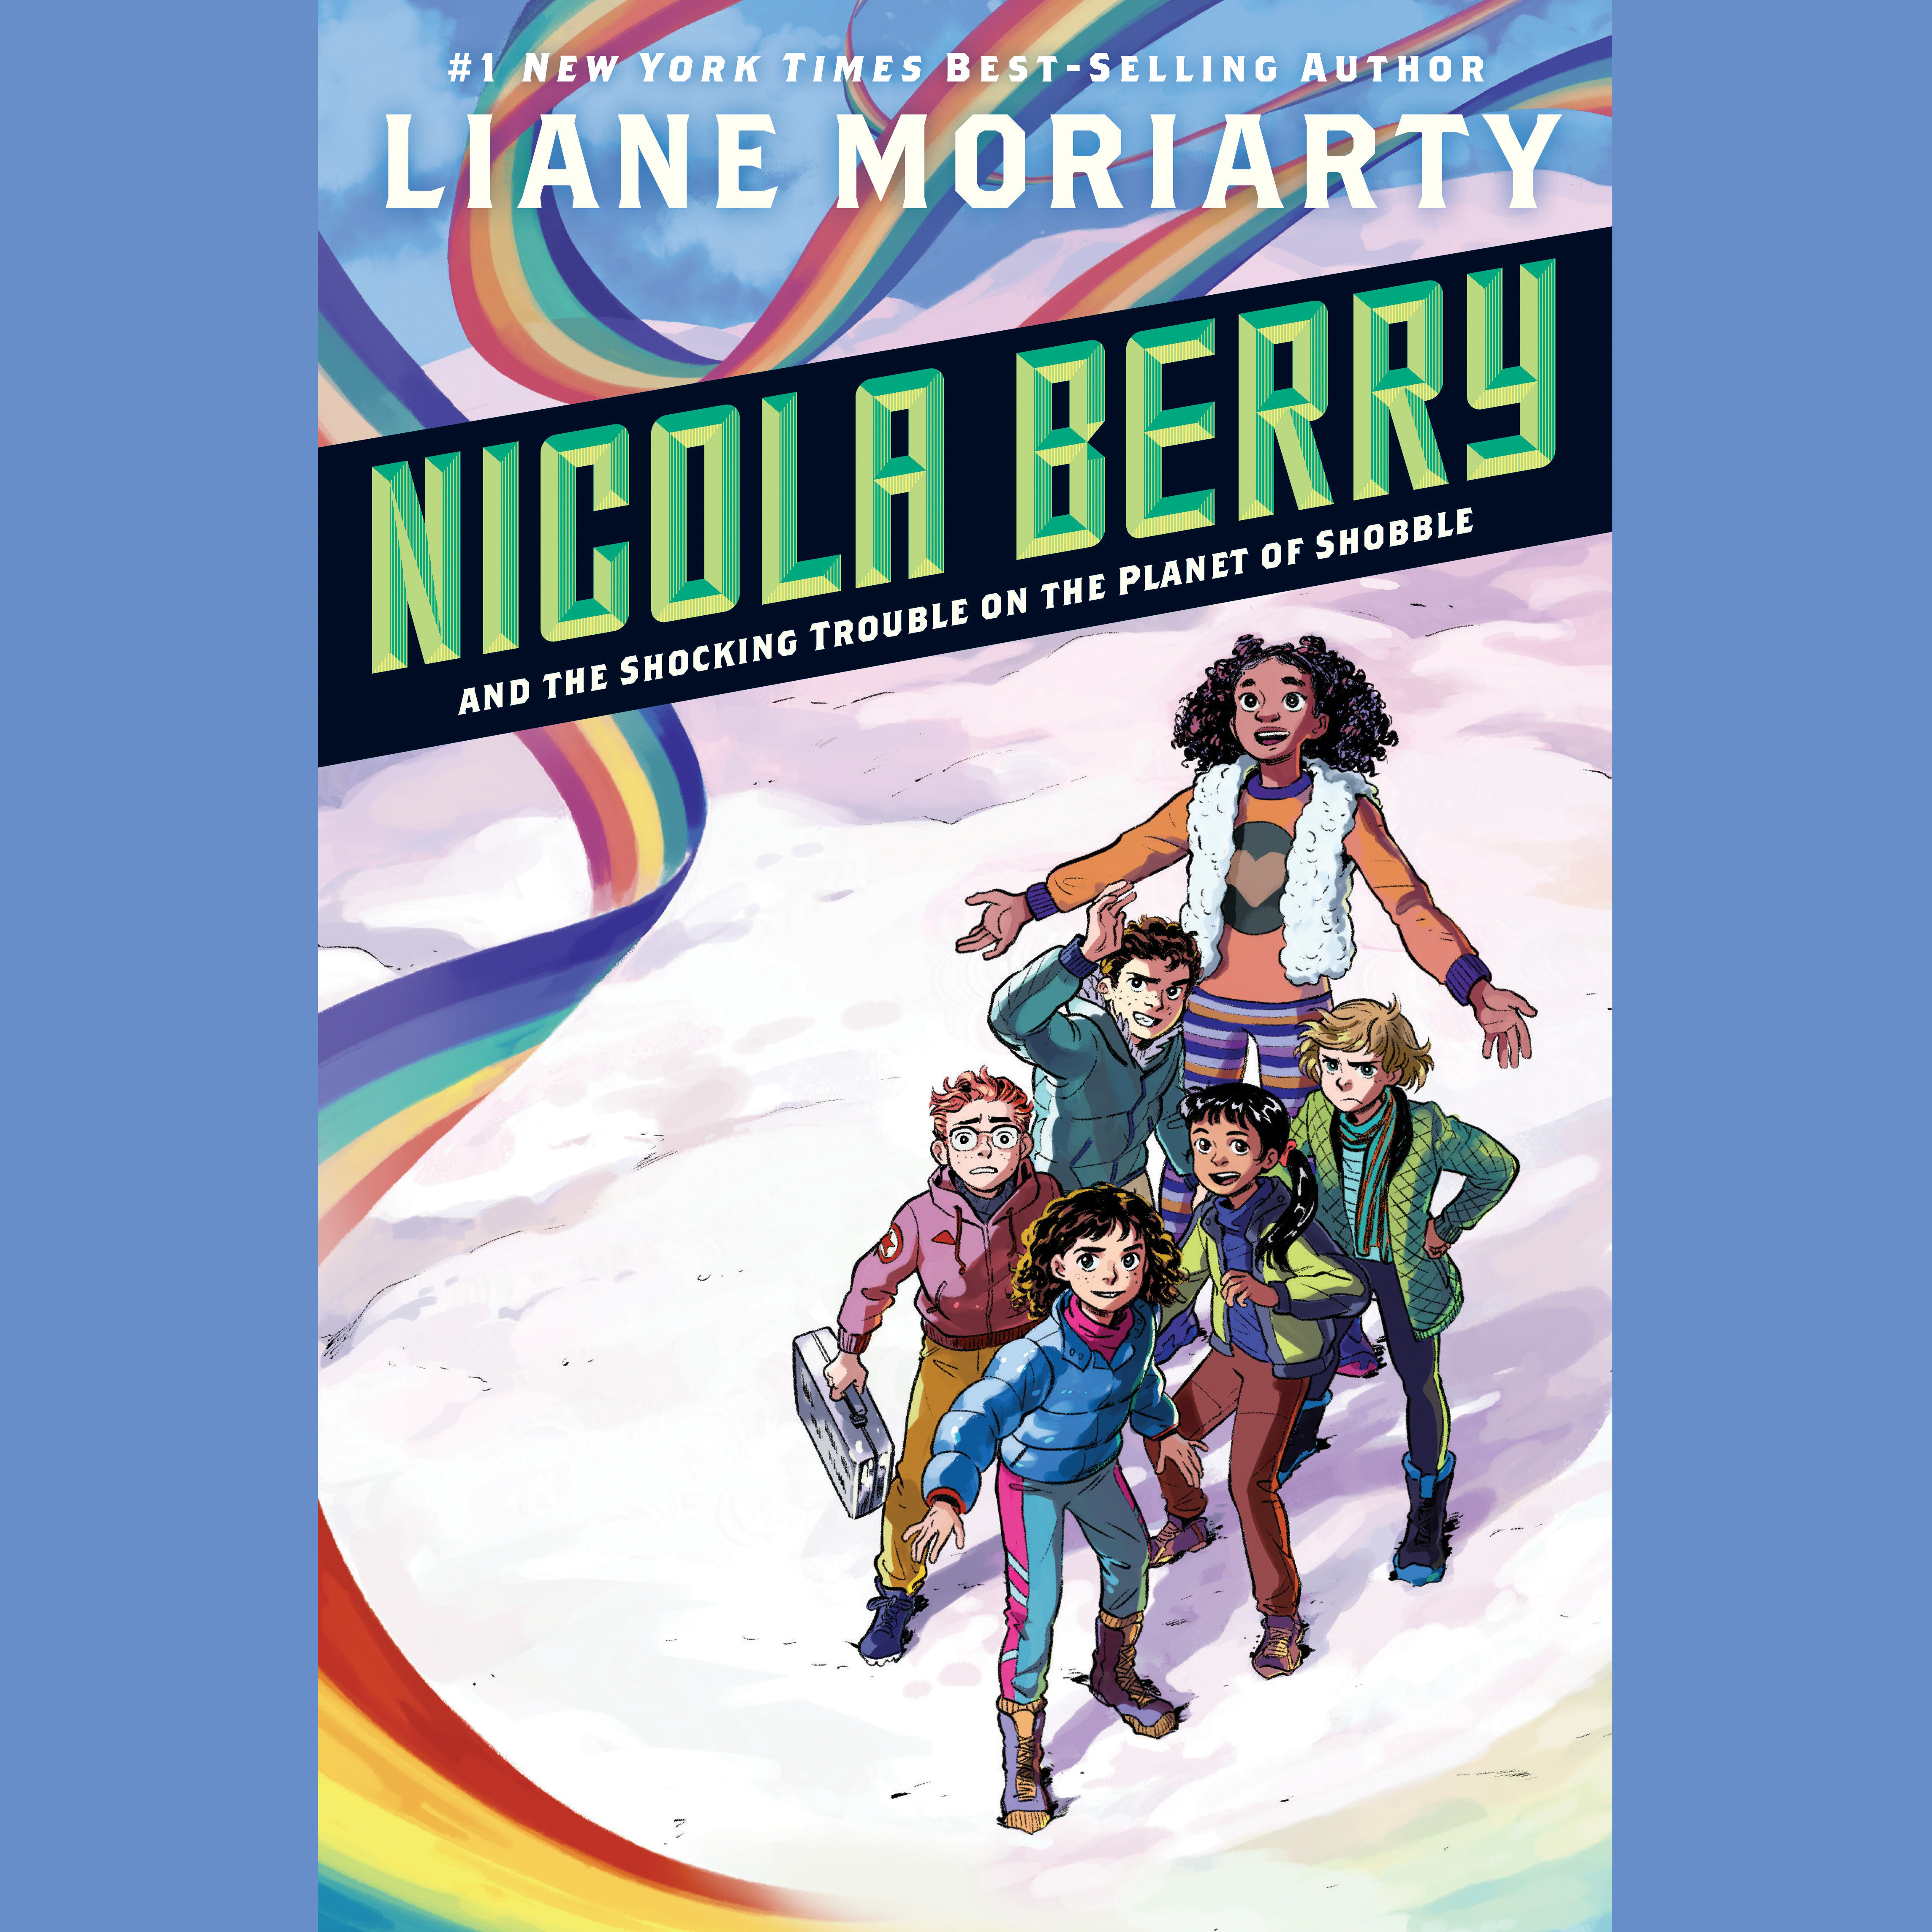 Printable Nicola Berry and the Shocking Trouble on the Planet of Shobble #2 Audiobook Cover Art